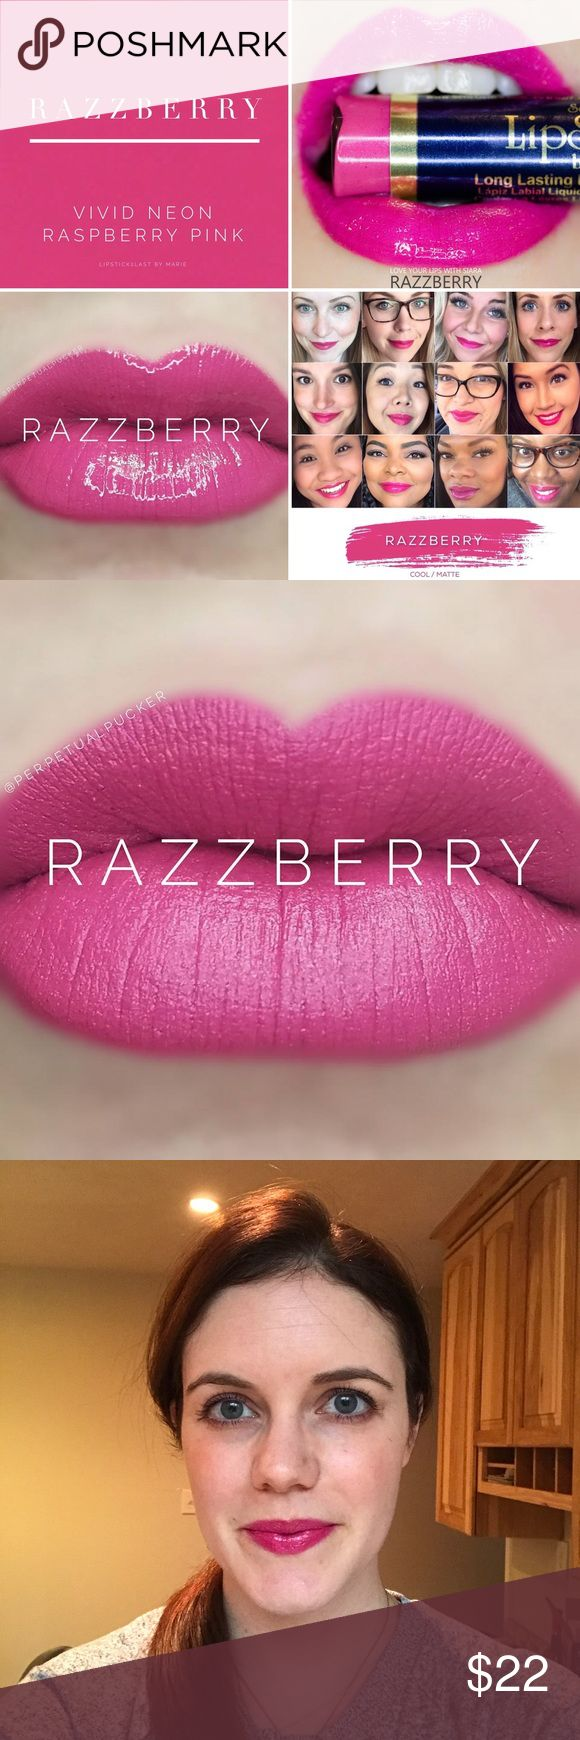 Razzberry LipSense Kiss proof, smudge proof, waterproof long-lasting lip color. Lasts 4-18 hours. Should be used with Glossy gloss also available in my boutique ($20). No tax! Senegence Makeup Lipstick